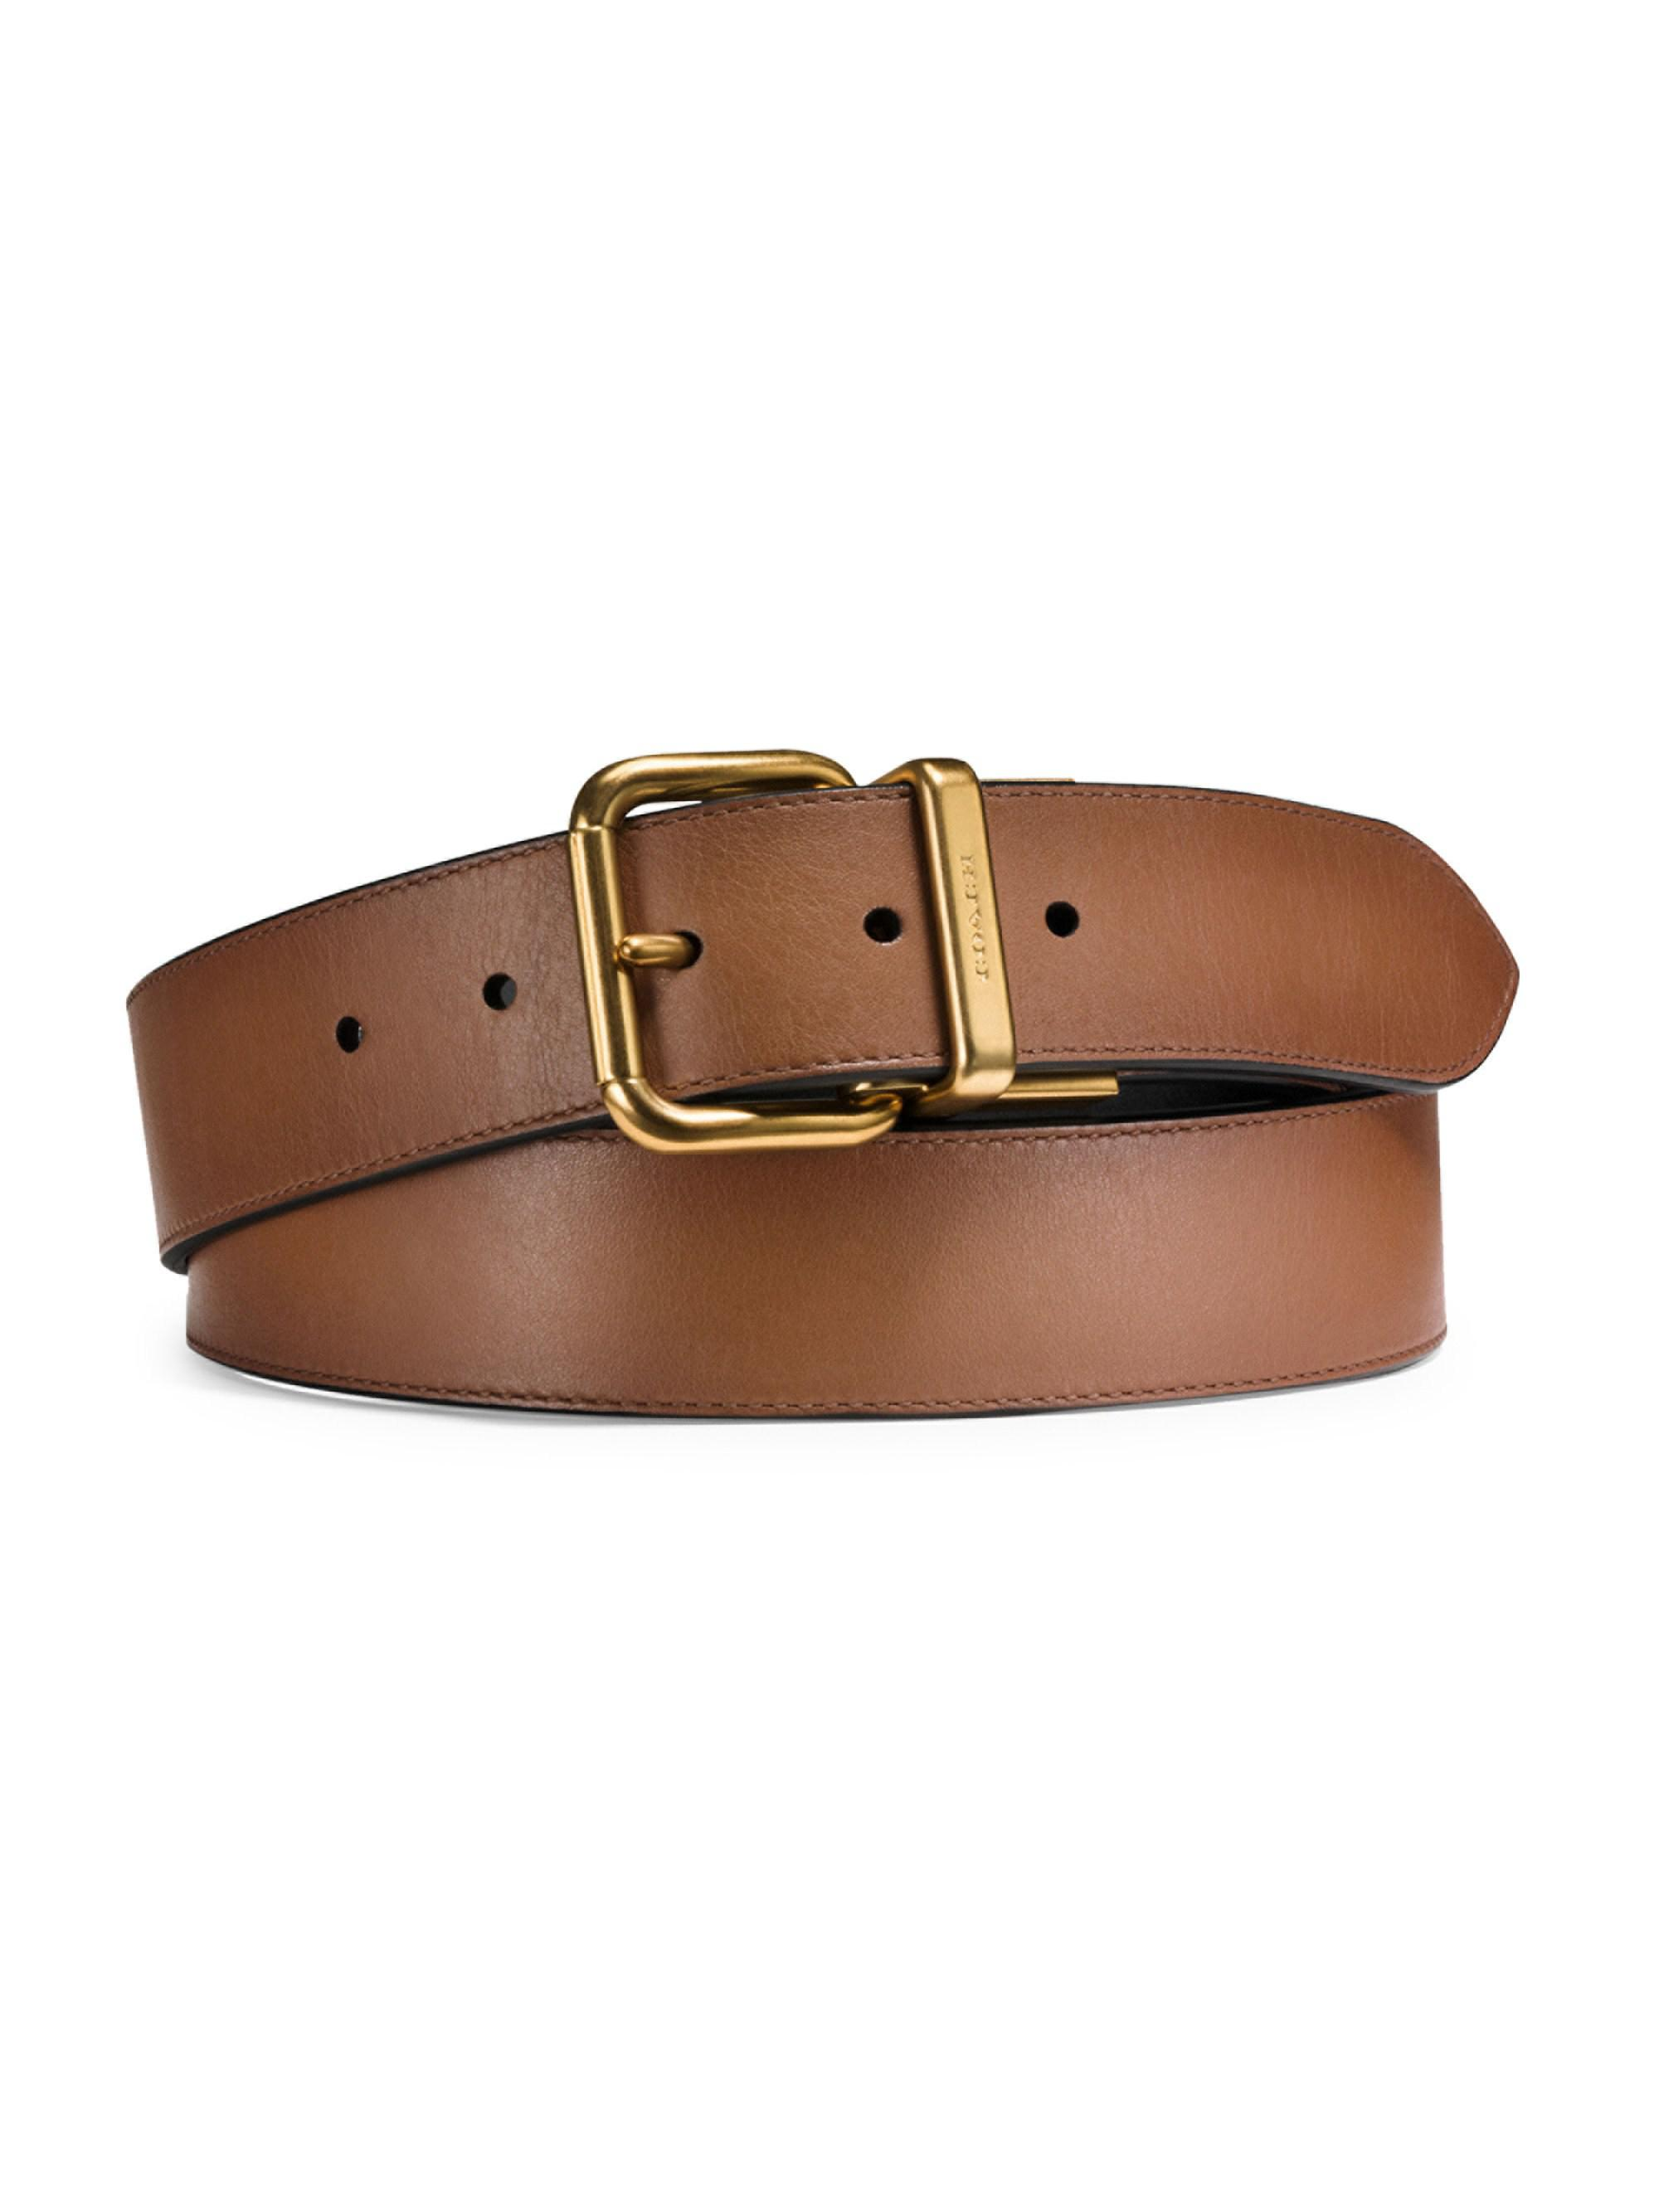 ee70ace95d8c Coach Reversible Leather Belt in Brown for Men - Lyst